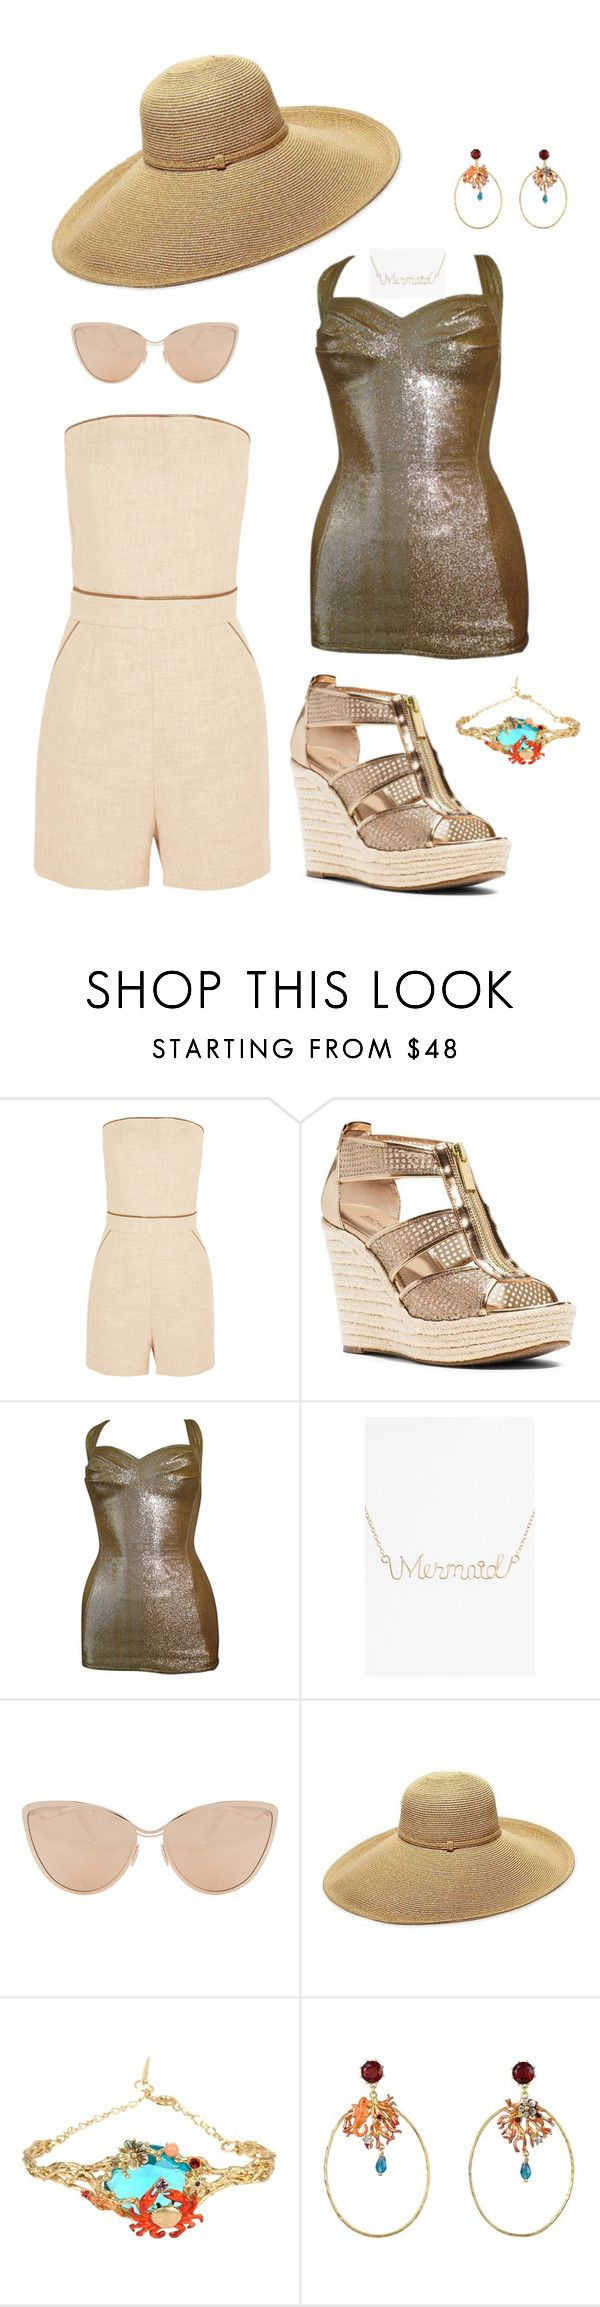 """Take Me to the Ocean"" by mrs-ginger-boss ❤ liked on Polyvore featuring Tamara Mellon, MICHAEL Michael Kors, Cole of California, ki-ele, Cutler and Gross, Gottex and Les Néréides"